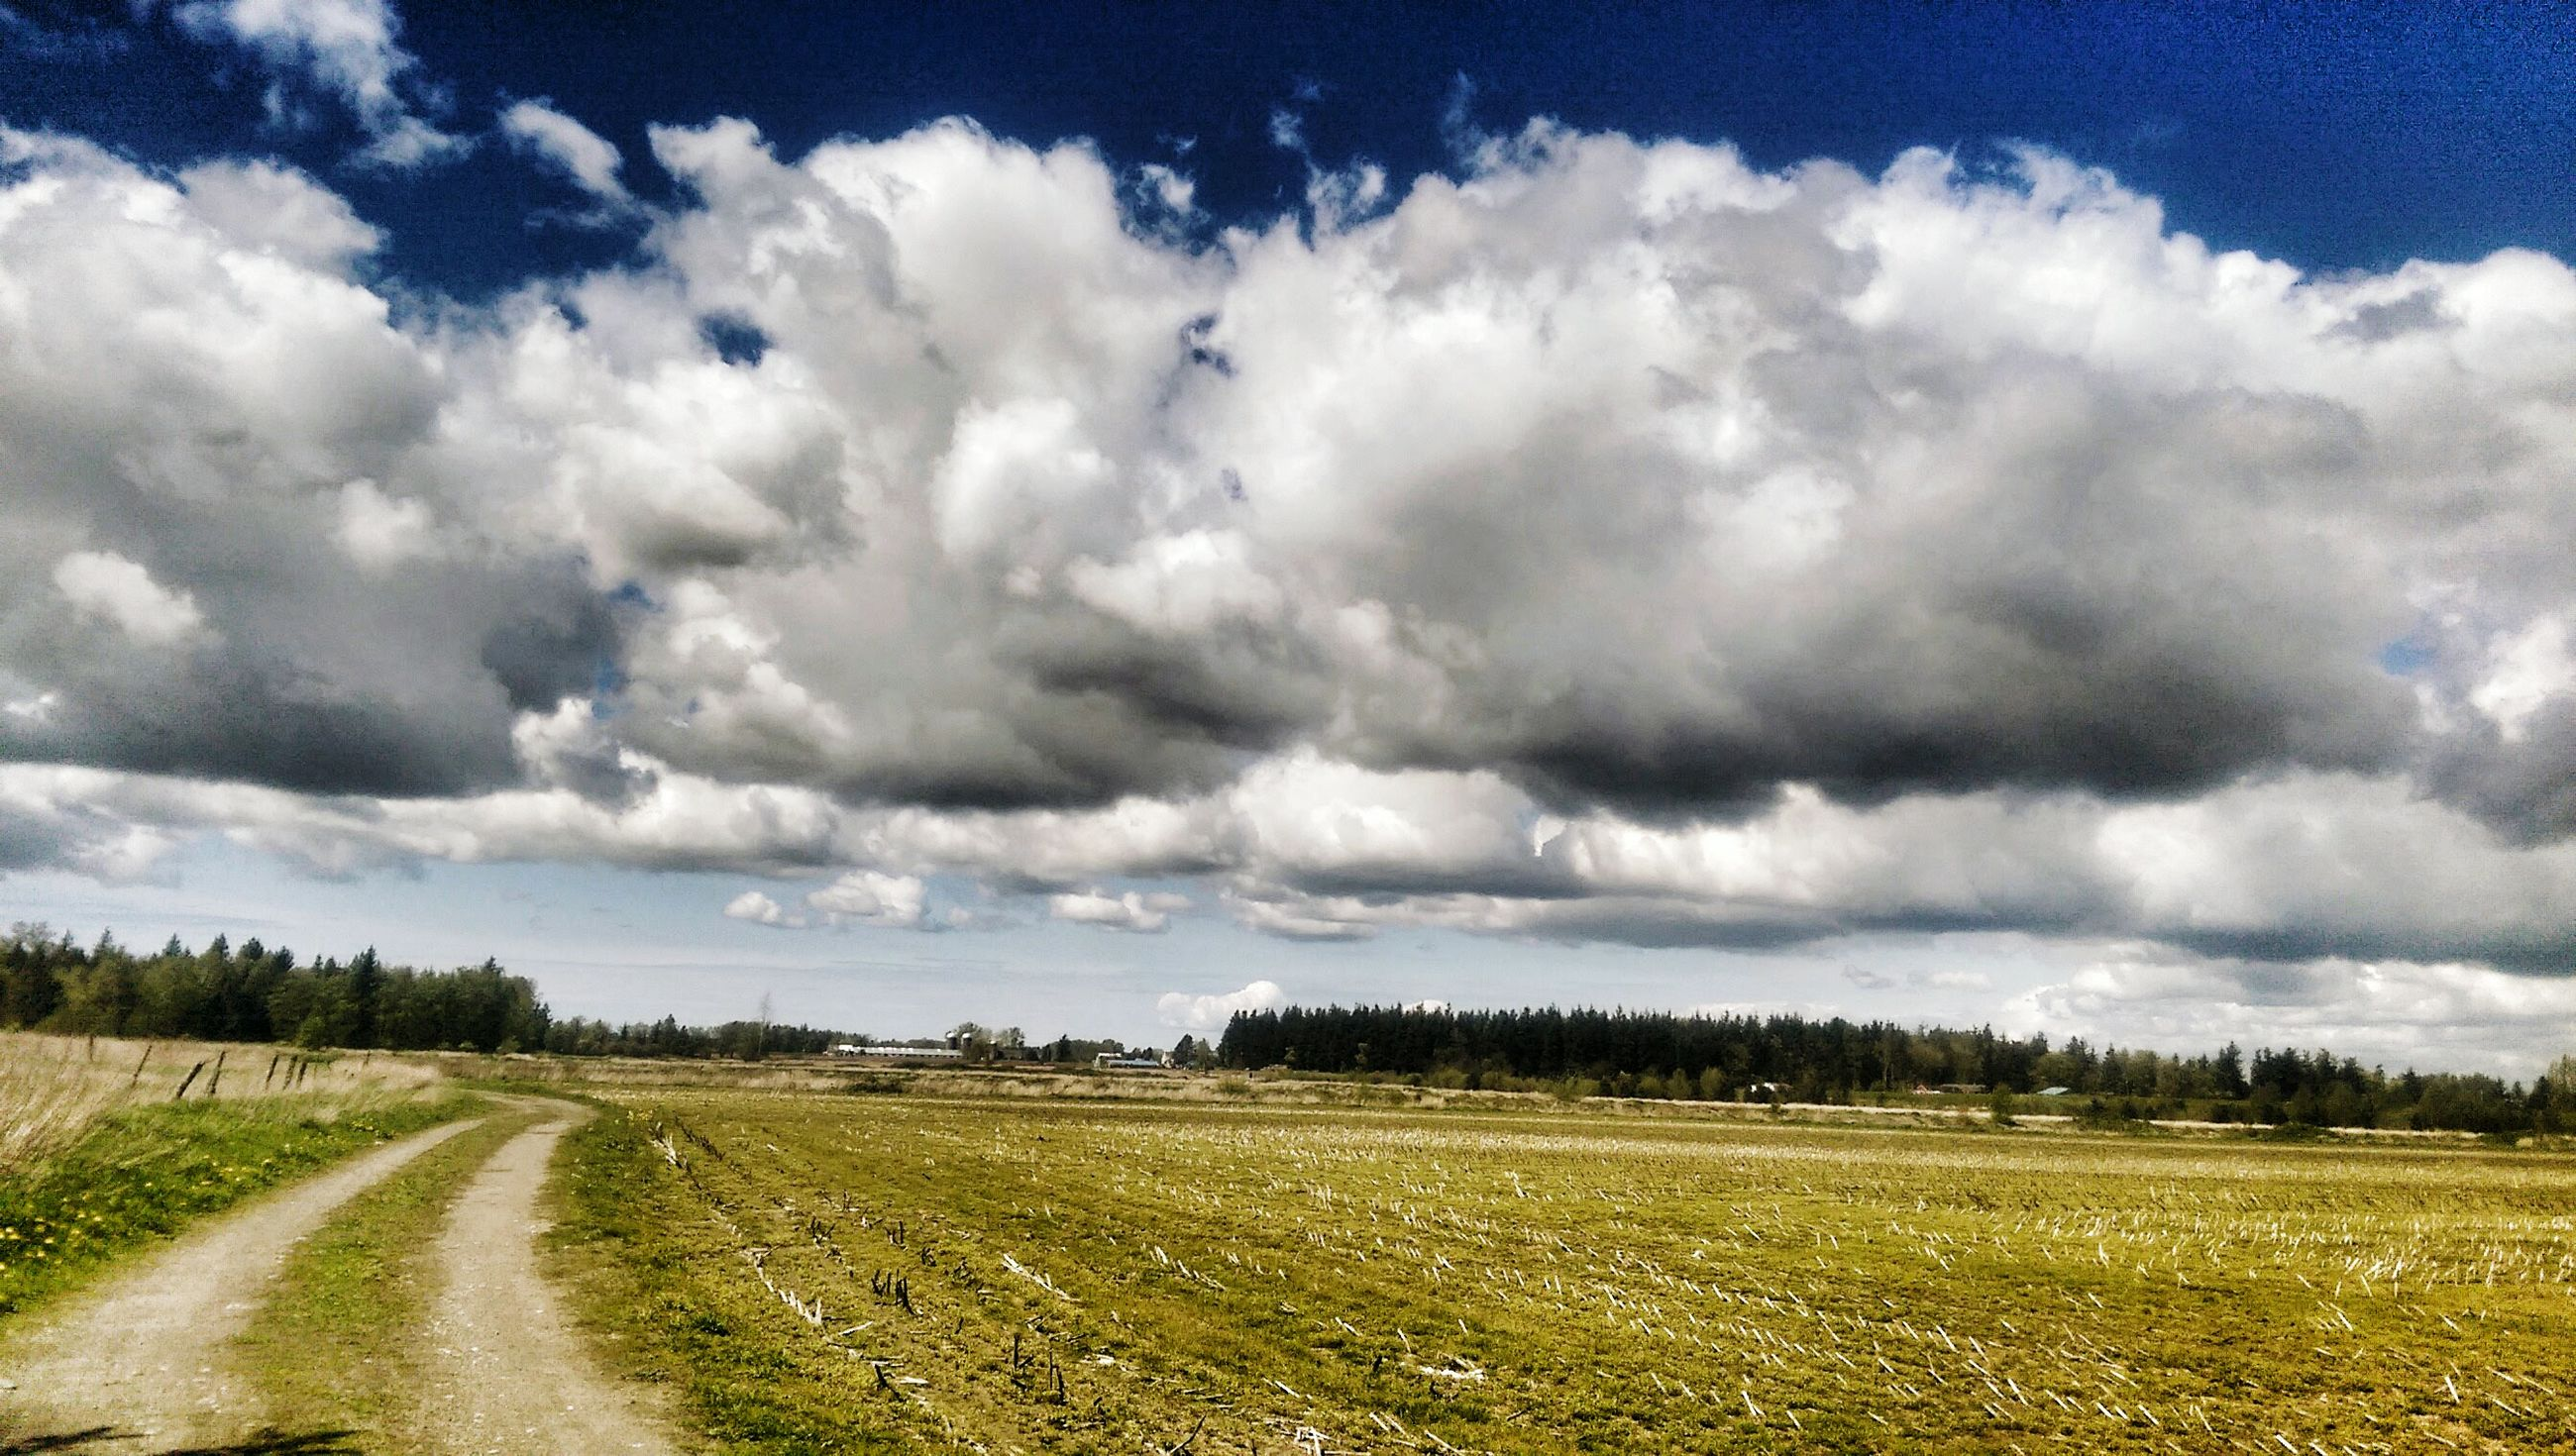 sky, cloud - sky, landscape, field, cloudy, grass, road, tranquil scene, cloud, transportation, tranquility, rural scene, nature, scenics, the way forward, beauty in nature, agriculture, country road, grassy, dirt road